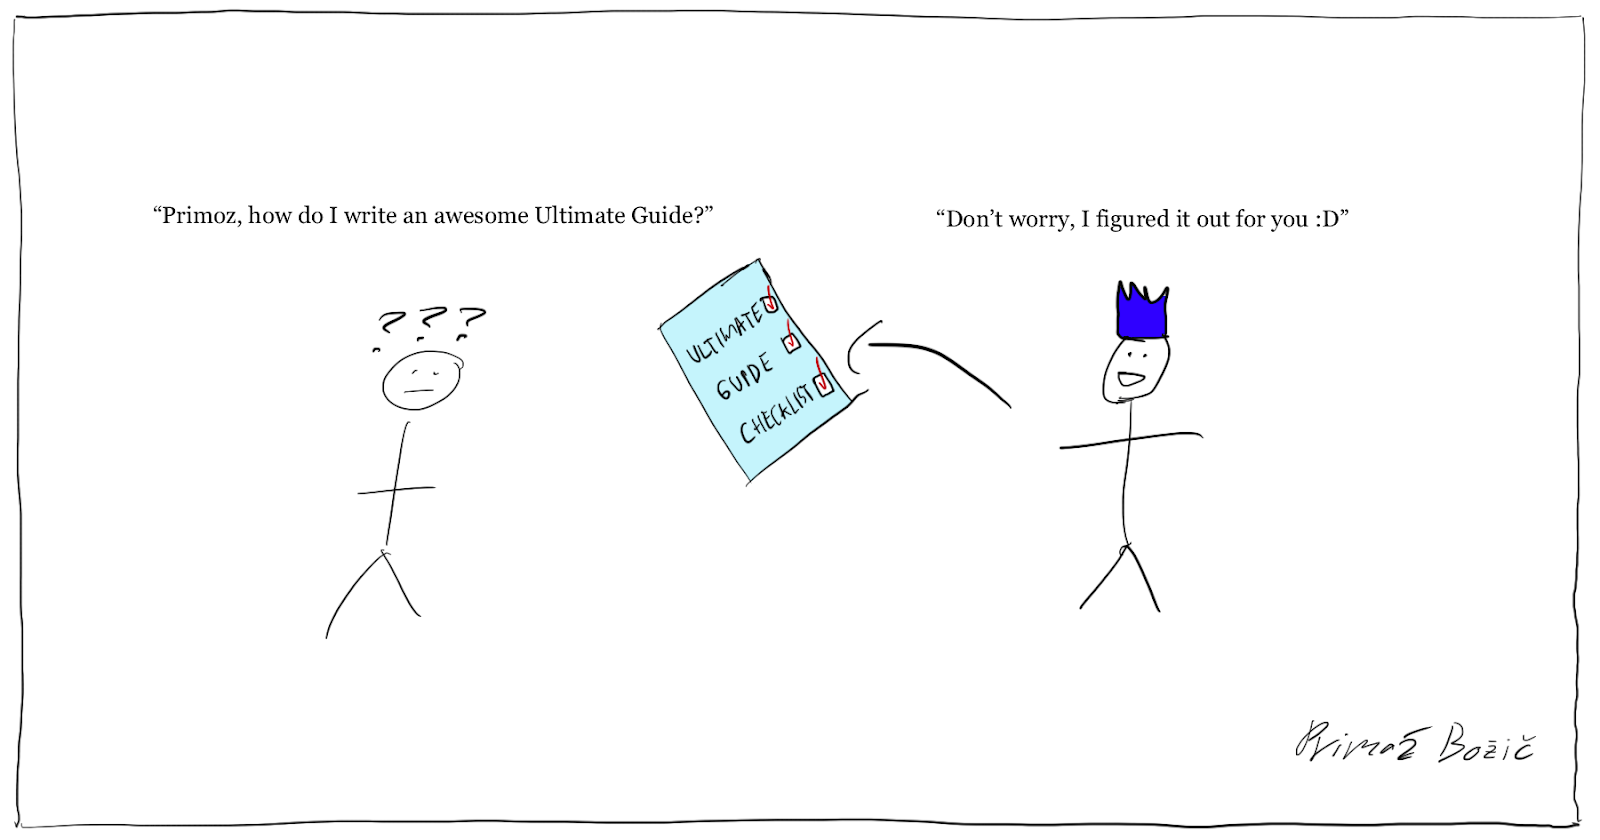 How to write an Ultimate Guide